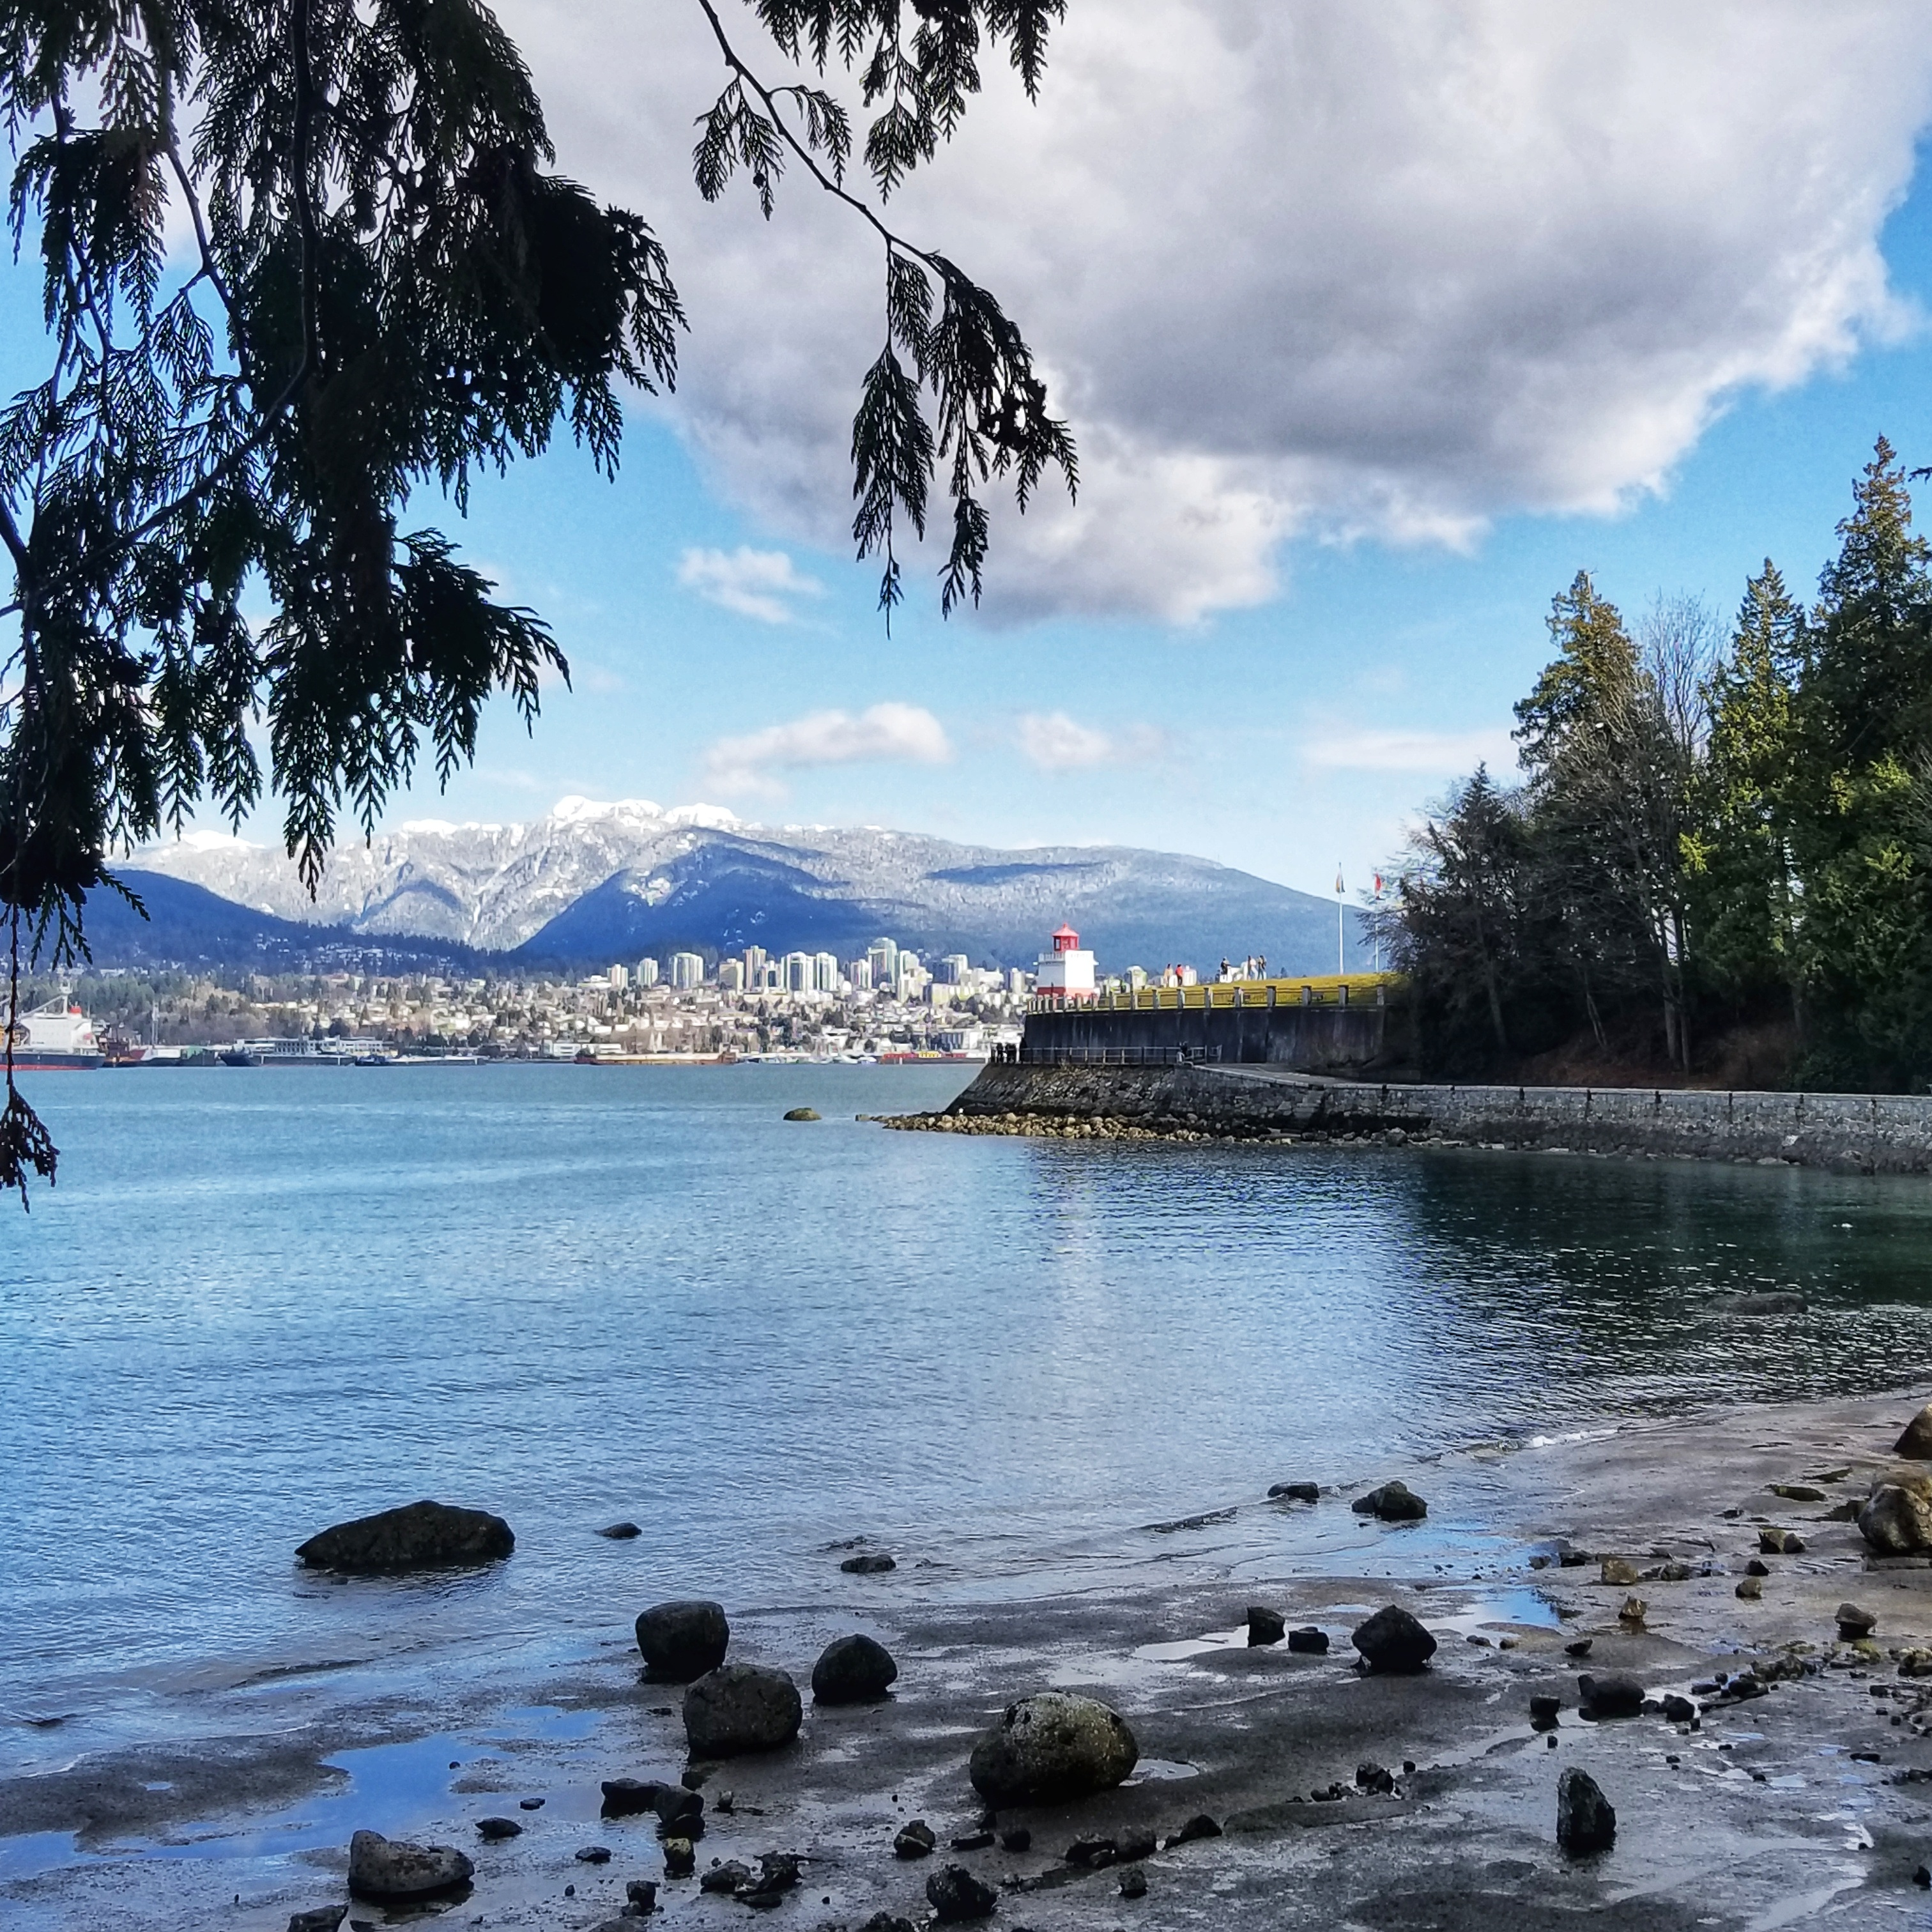 Stanley Park with views of the lighthouse and mountains